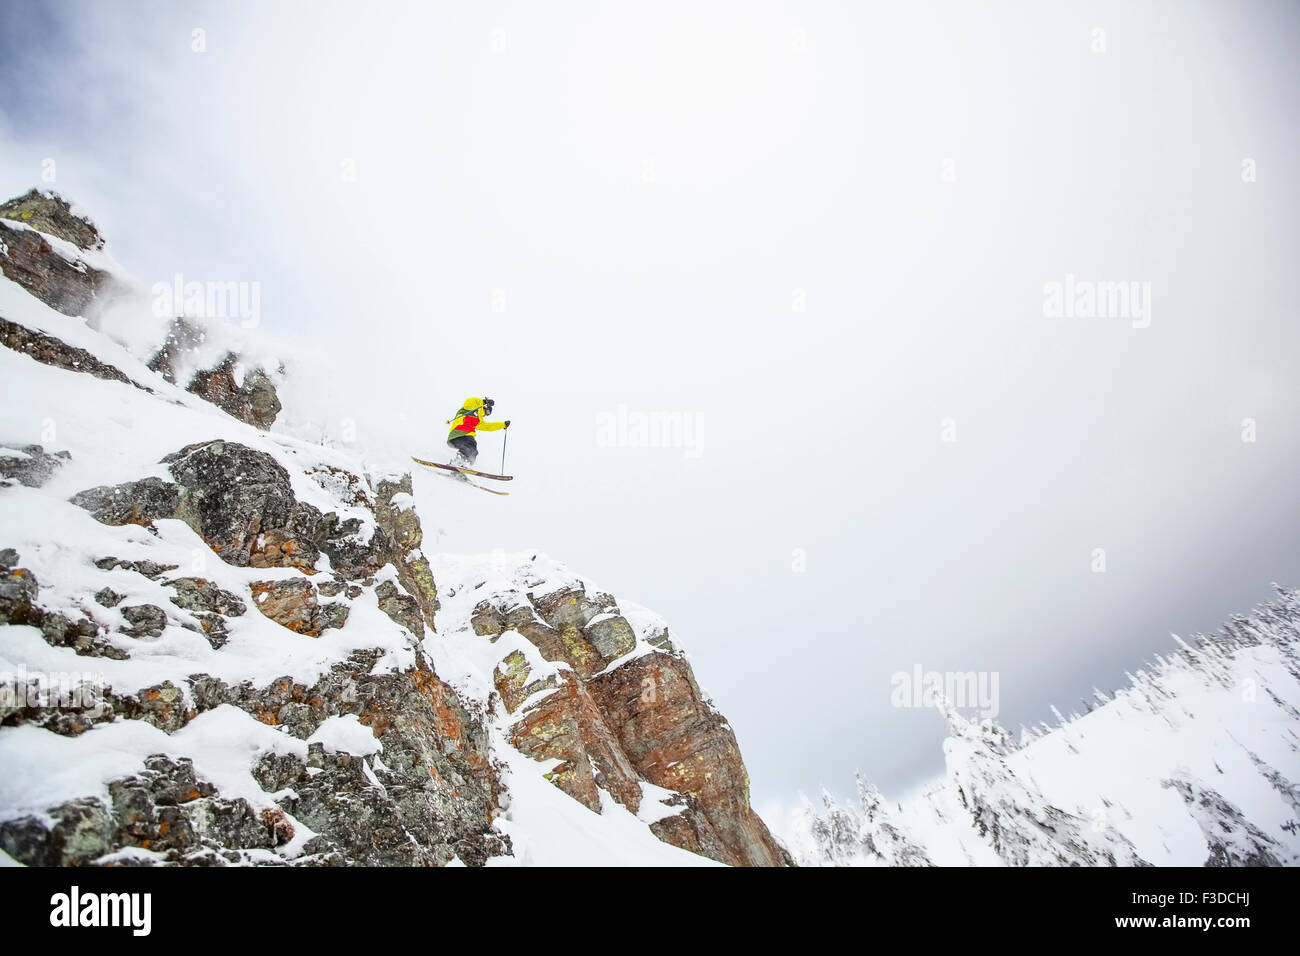 Skier jumping off rocky mountain - Stock Image